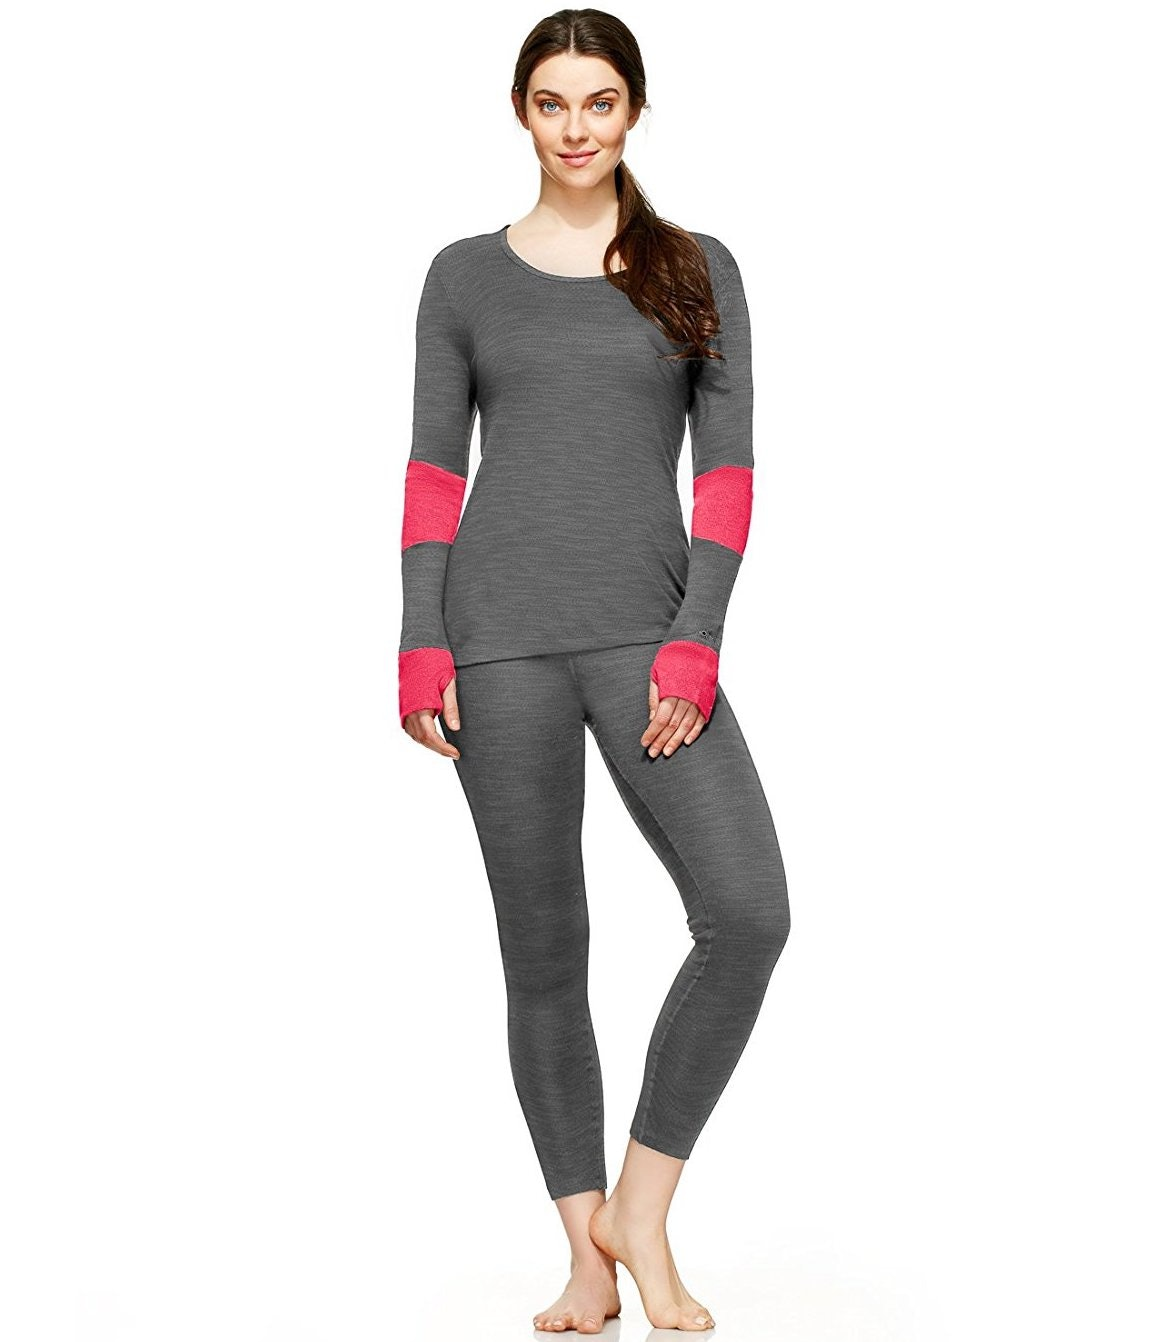 02aeef93d4d65 The 7 Best Thermal Underwear For Women